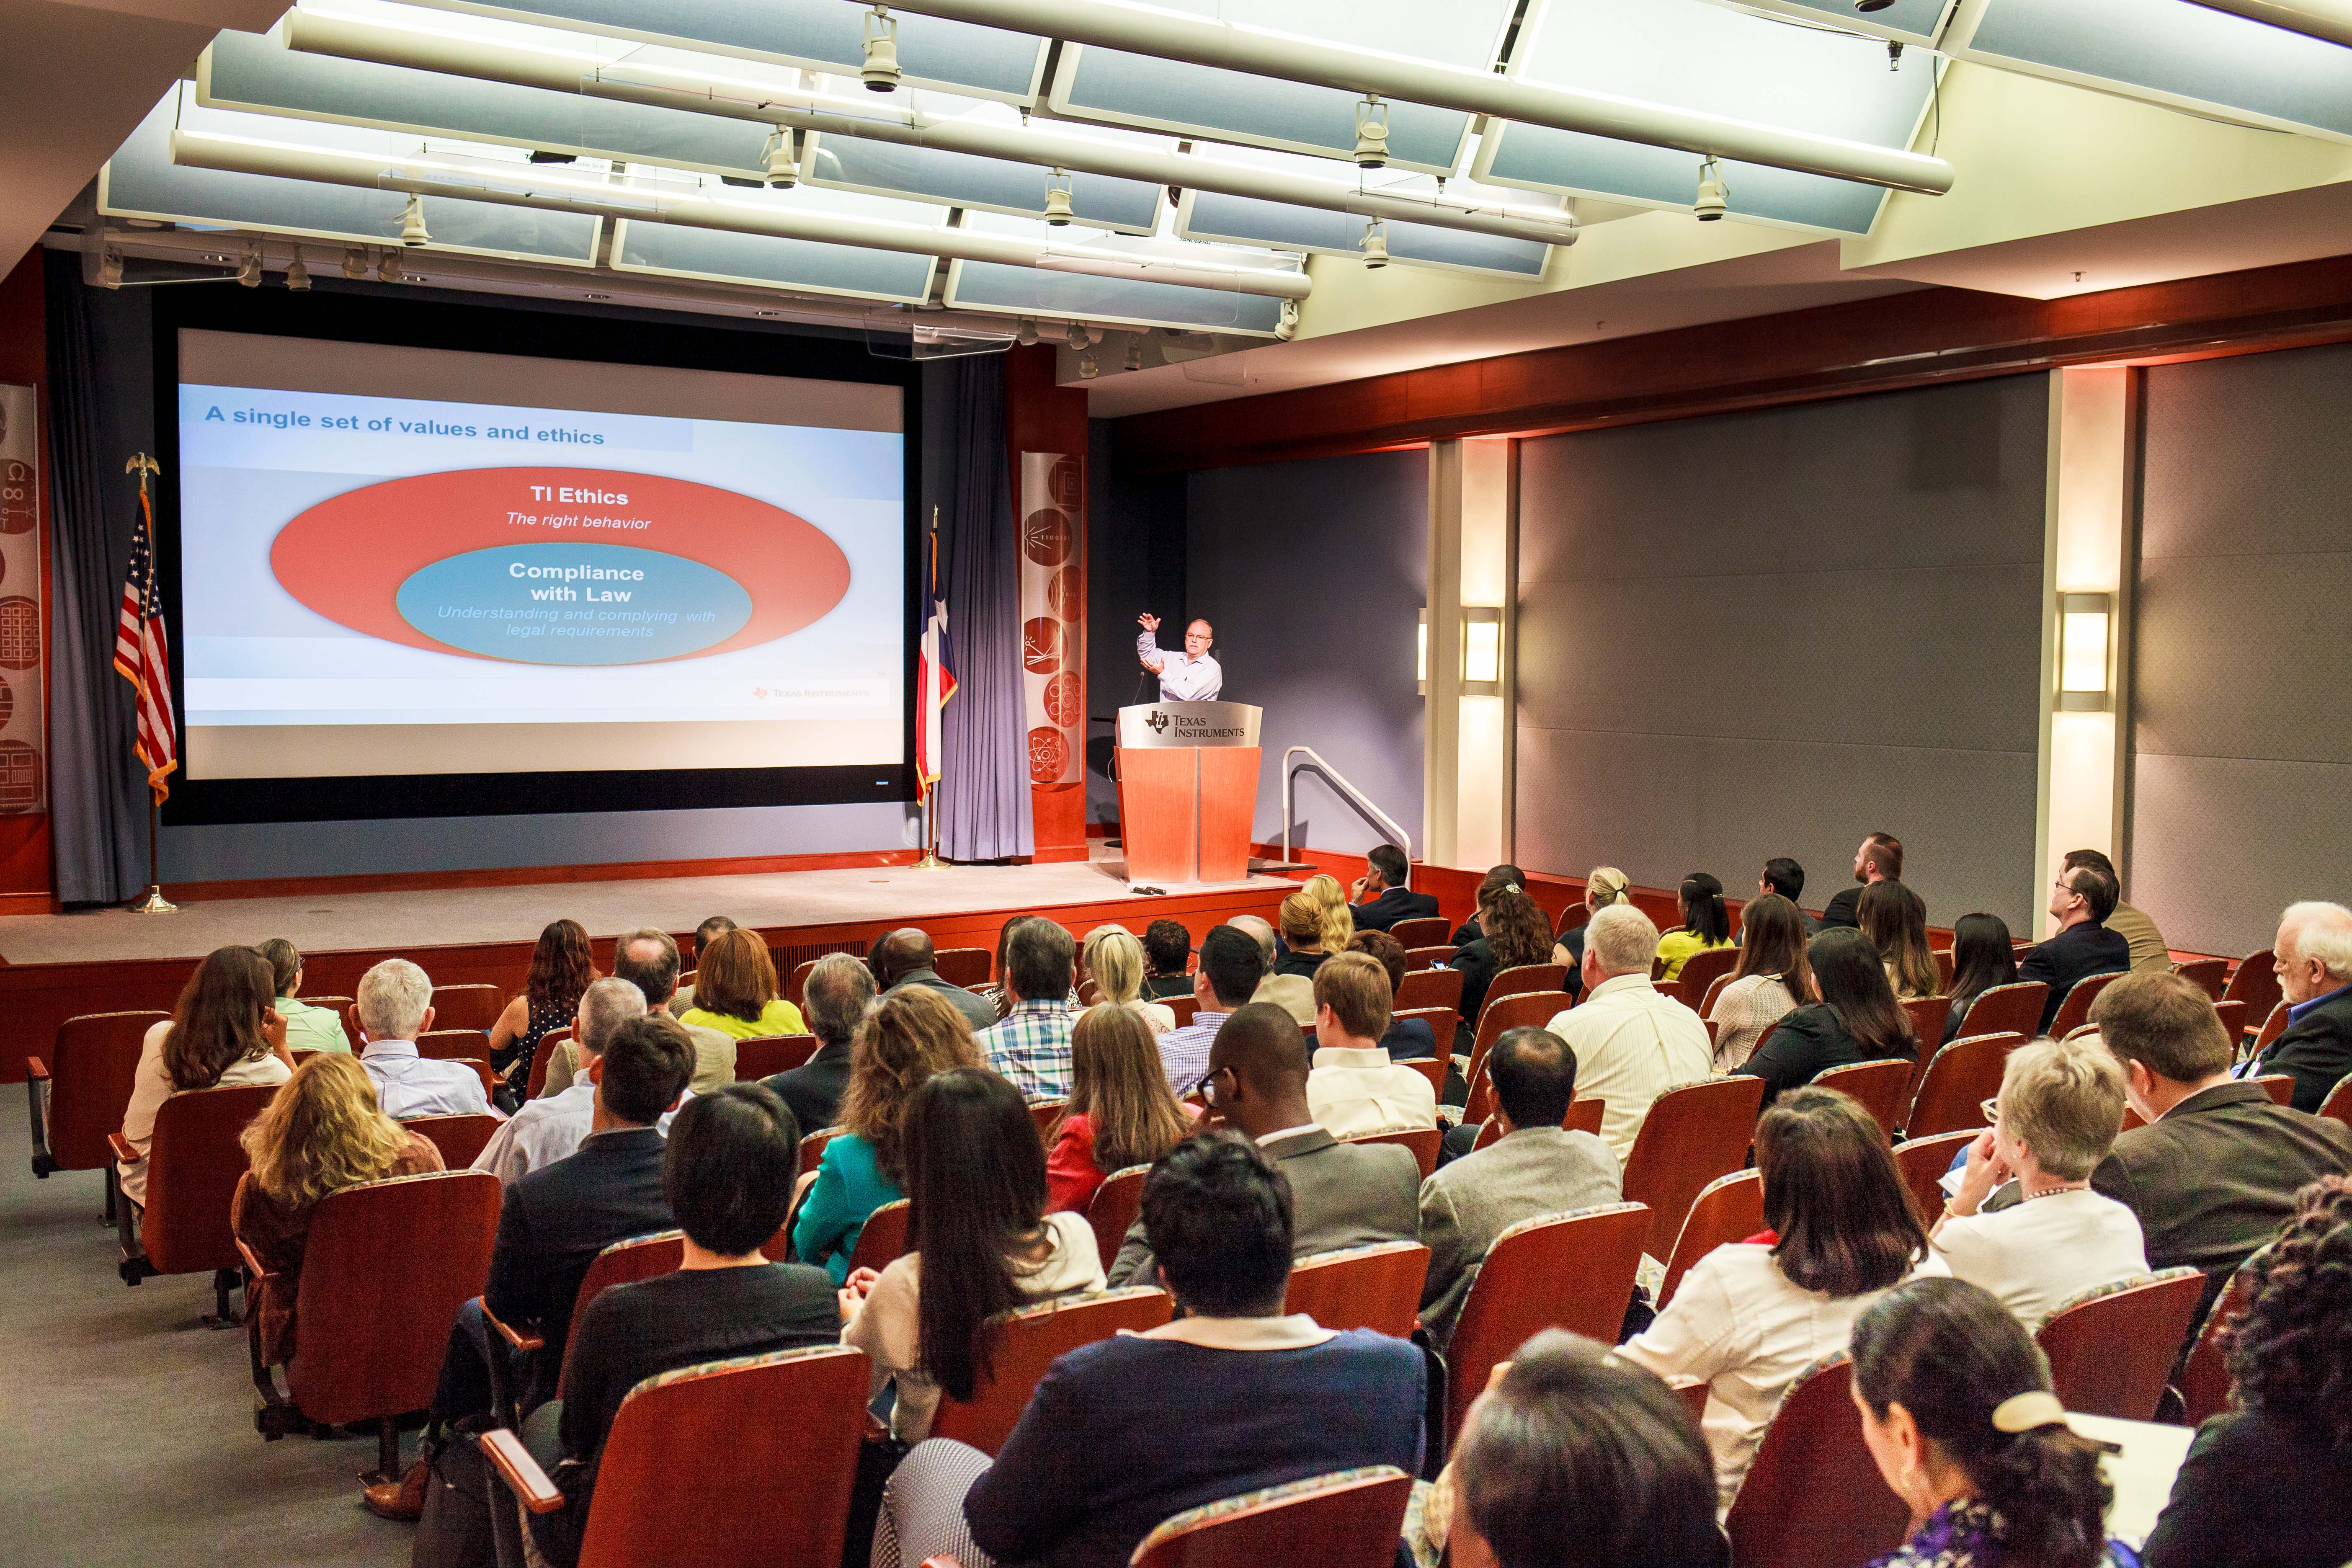 Sustainable Business Network Hosts Texas Instruments Ethics Talk